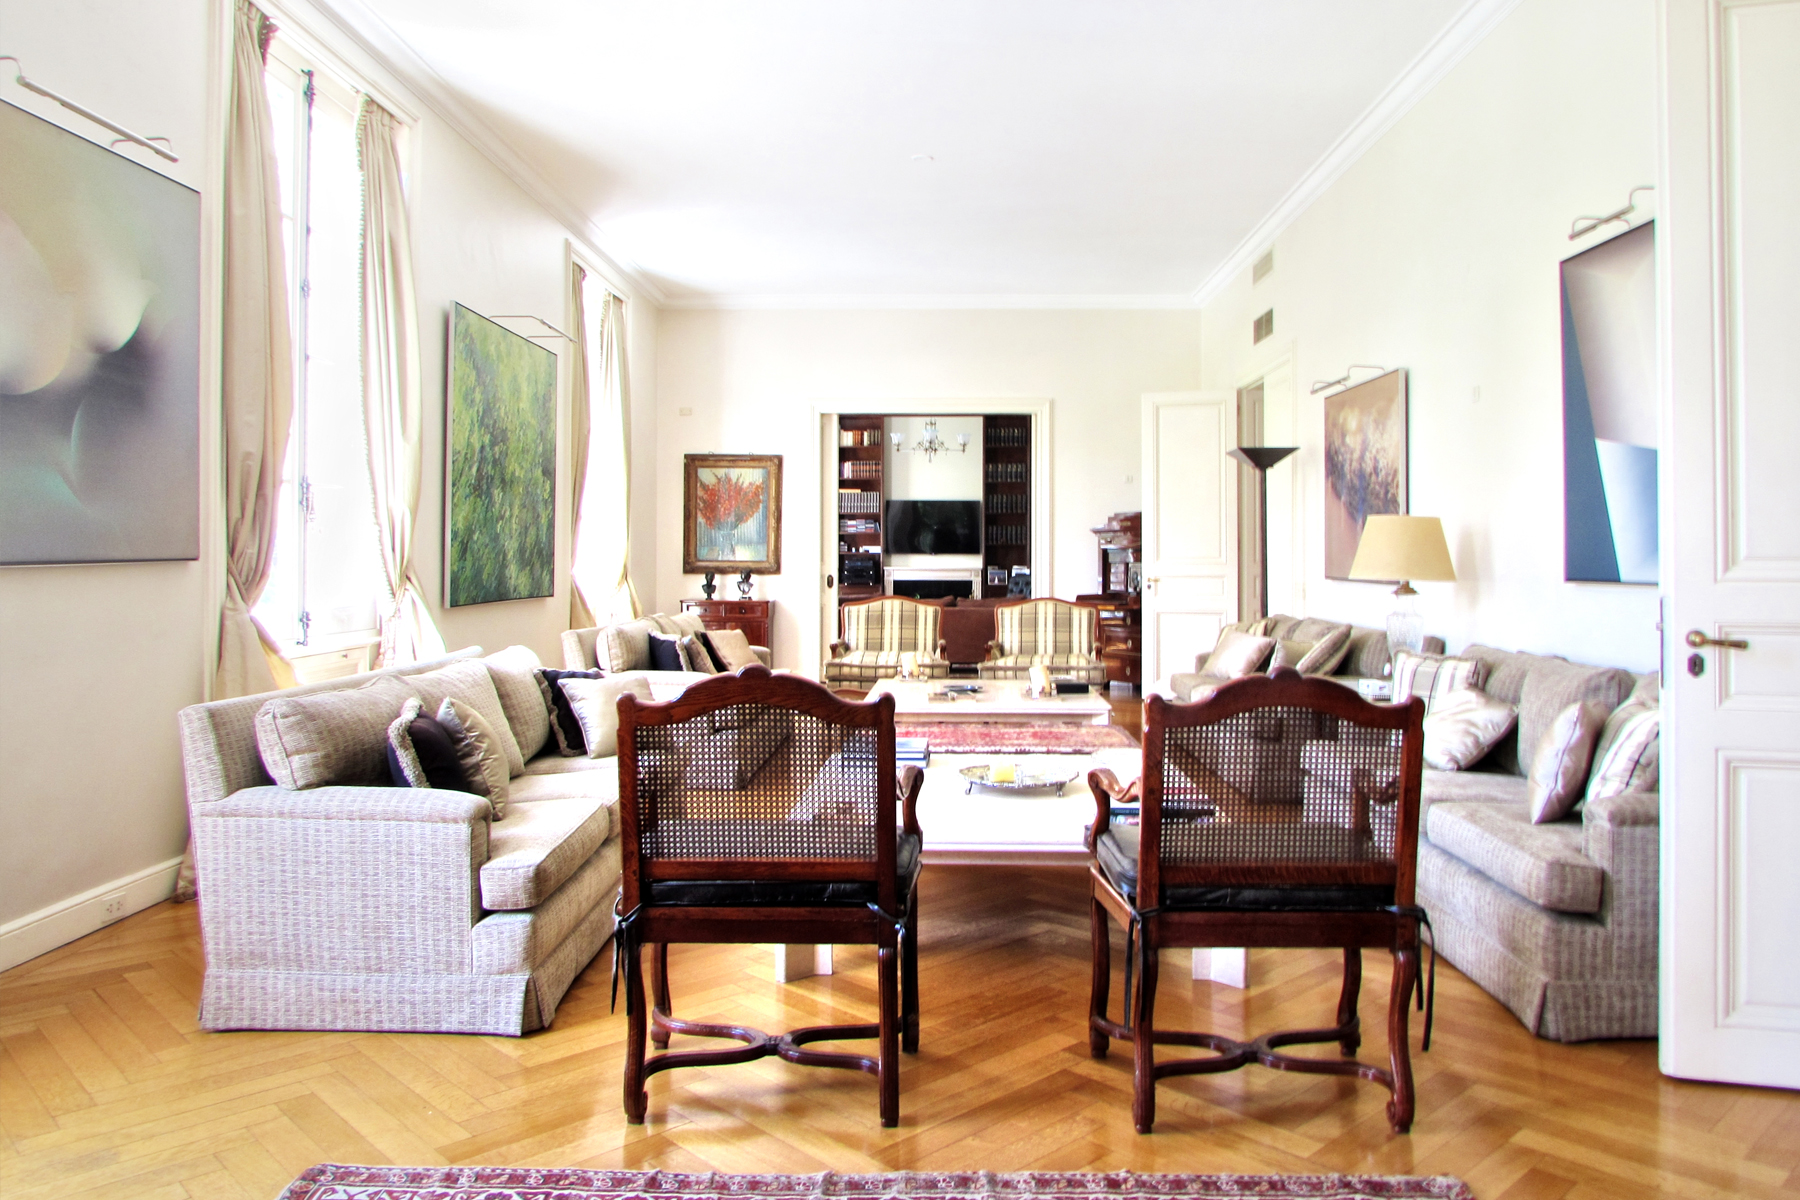 Apartment for Sale at Exclusive french style apartment Recoleta, Buenos Aires, Buenos Aires Argentina